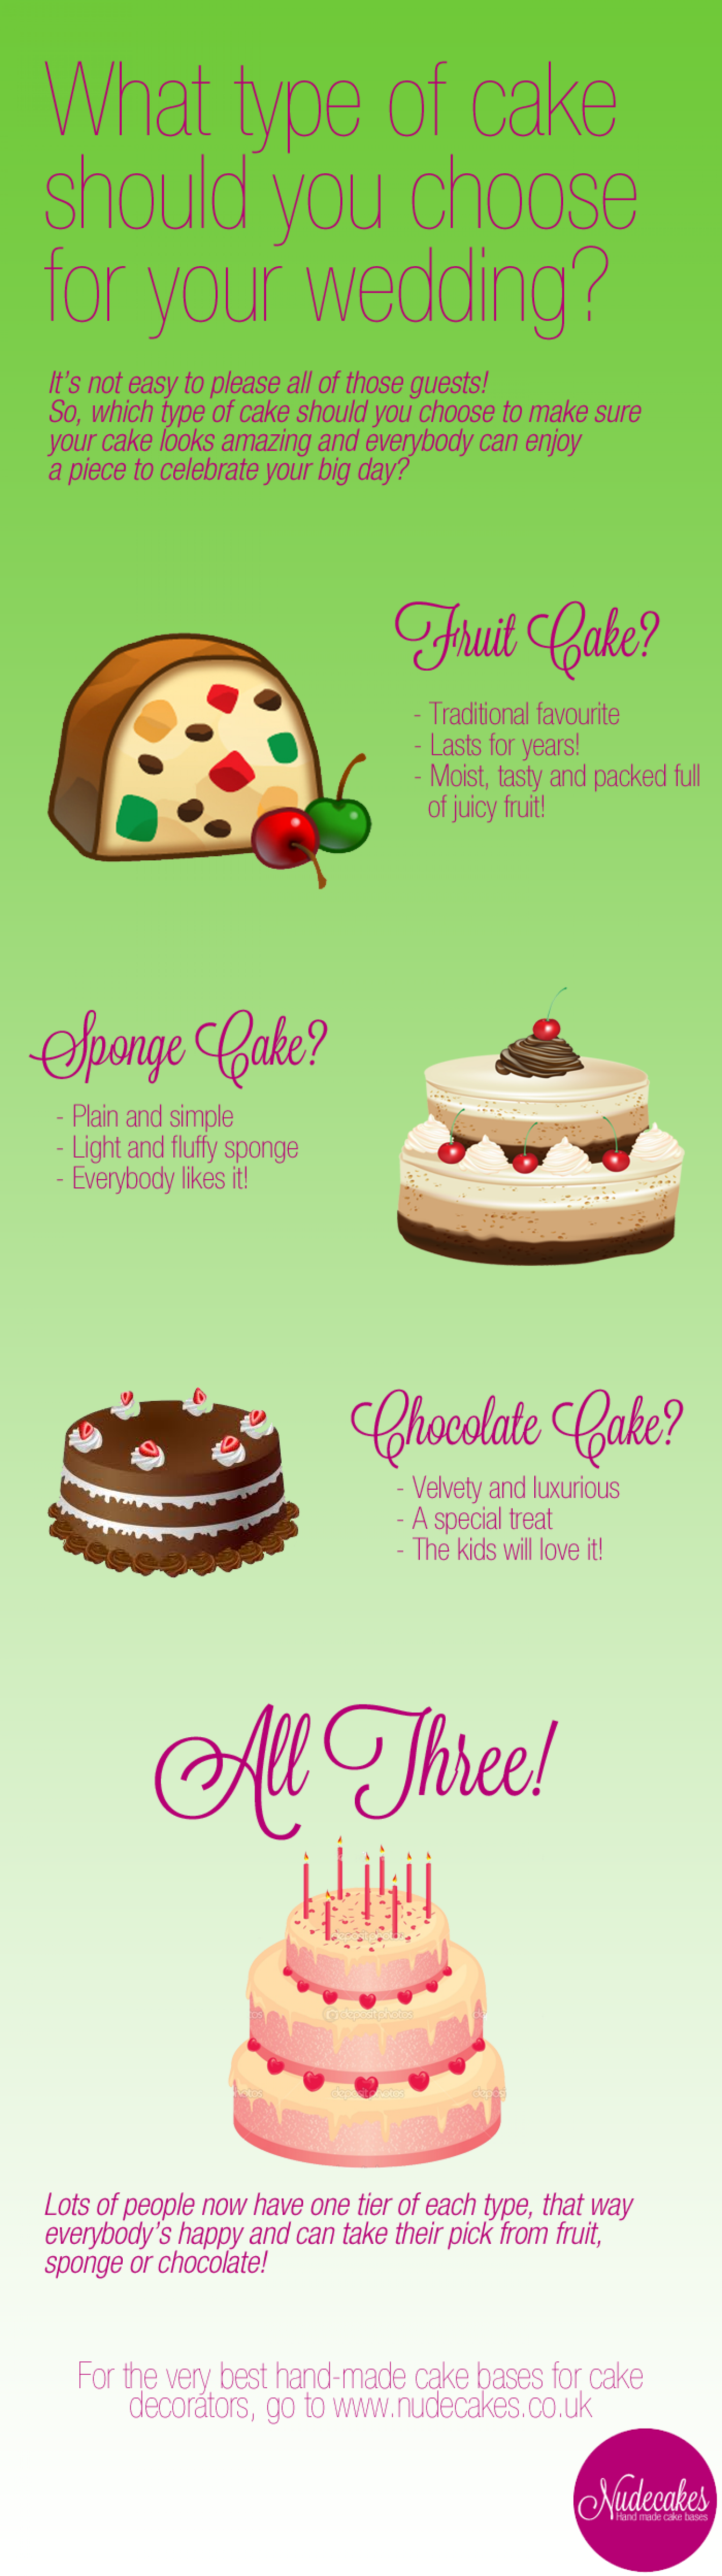 What type of wedding cake should you choose? Infographic